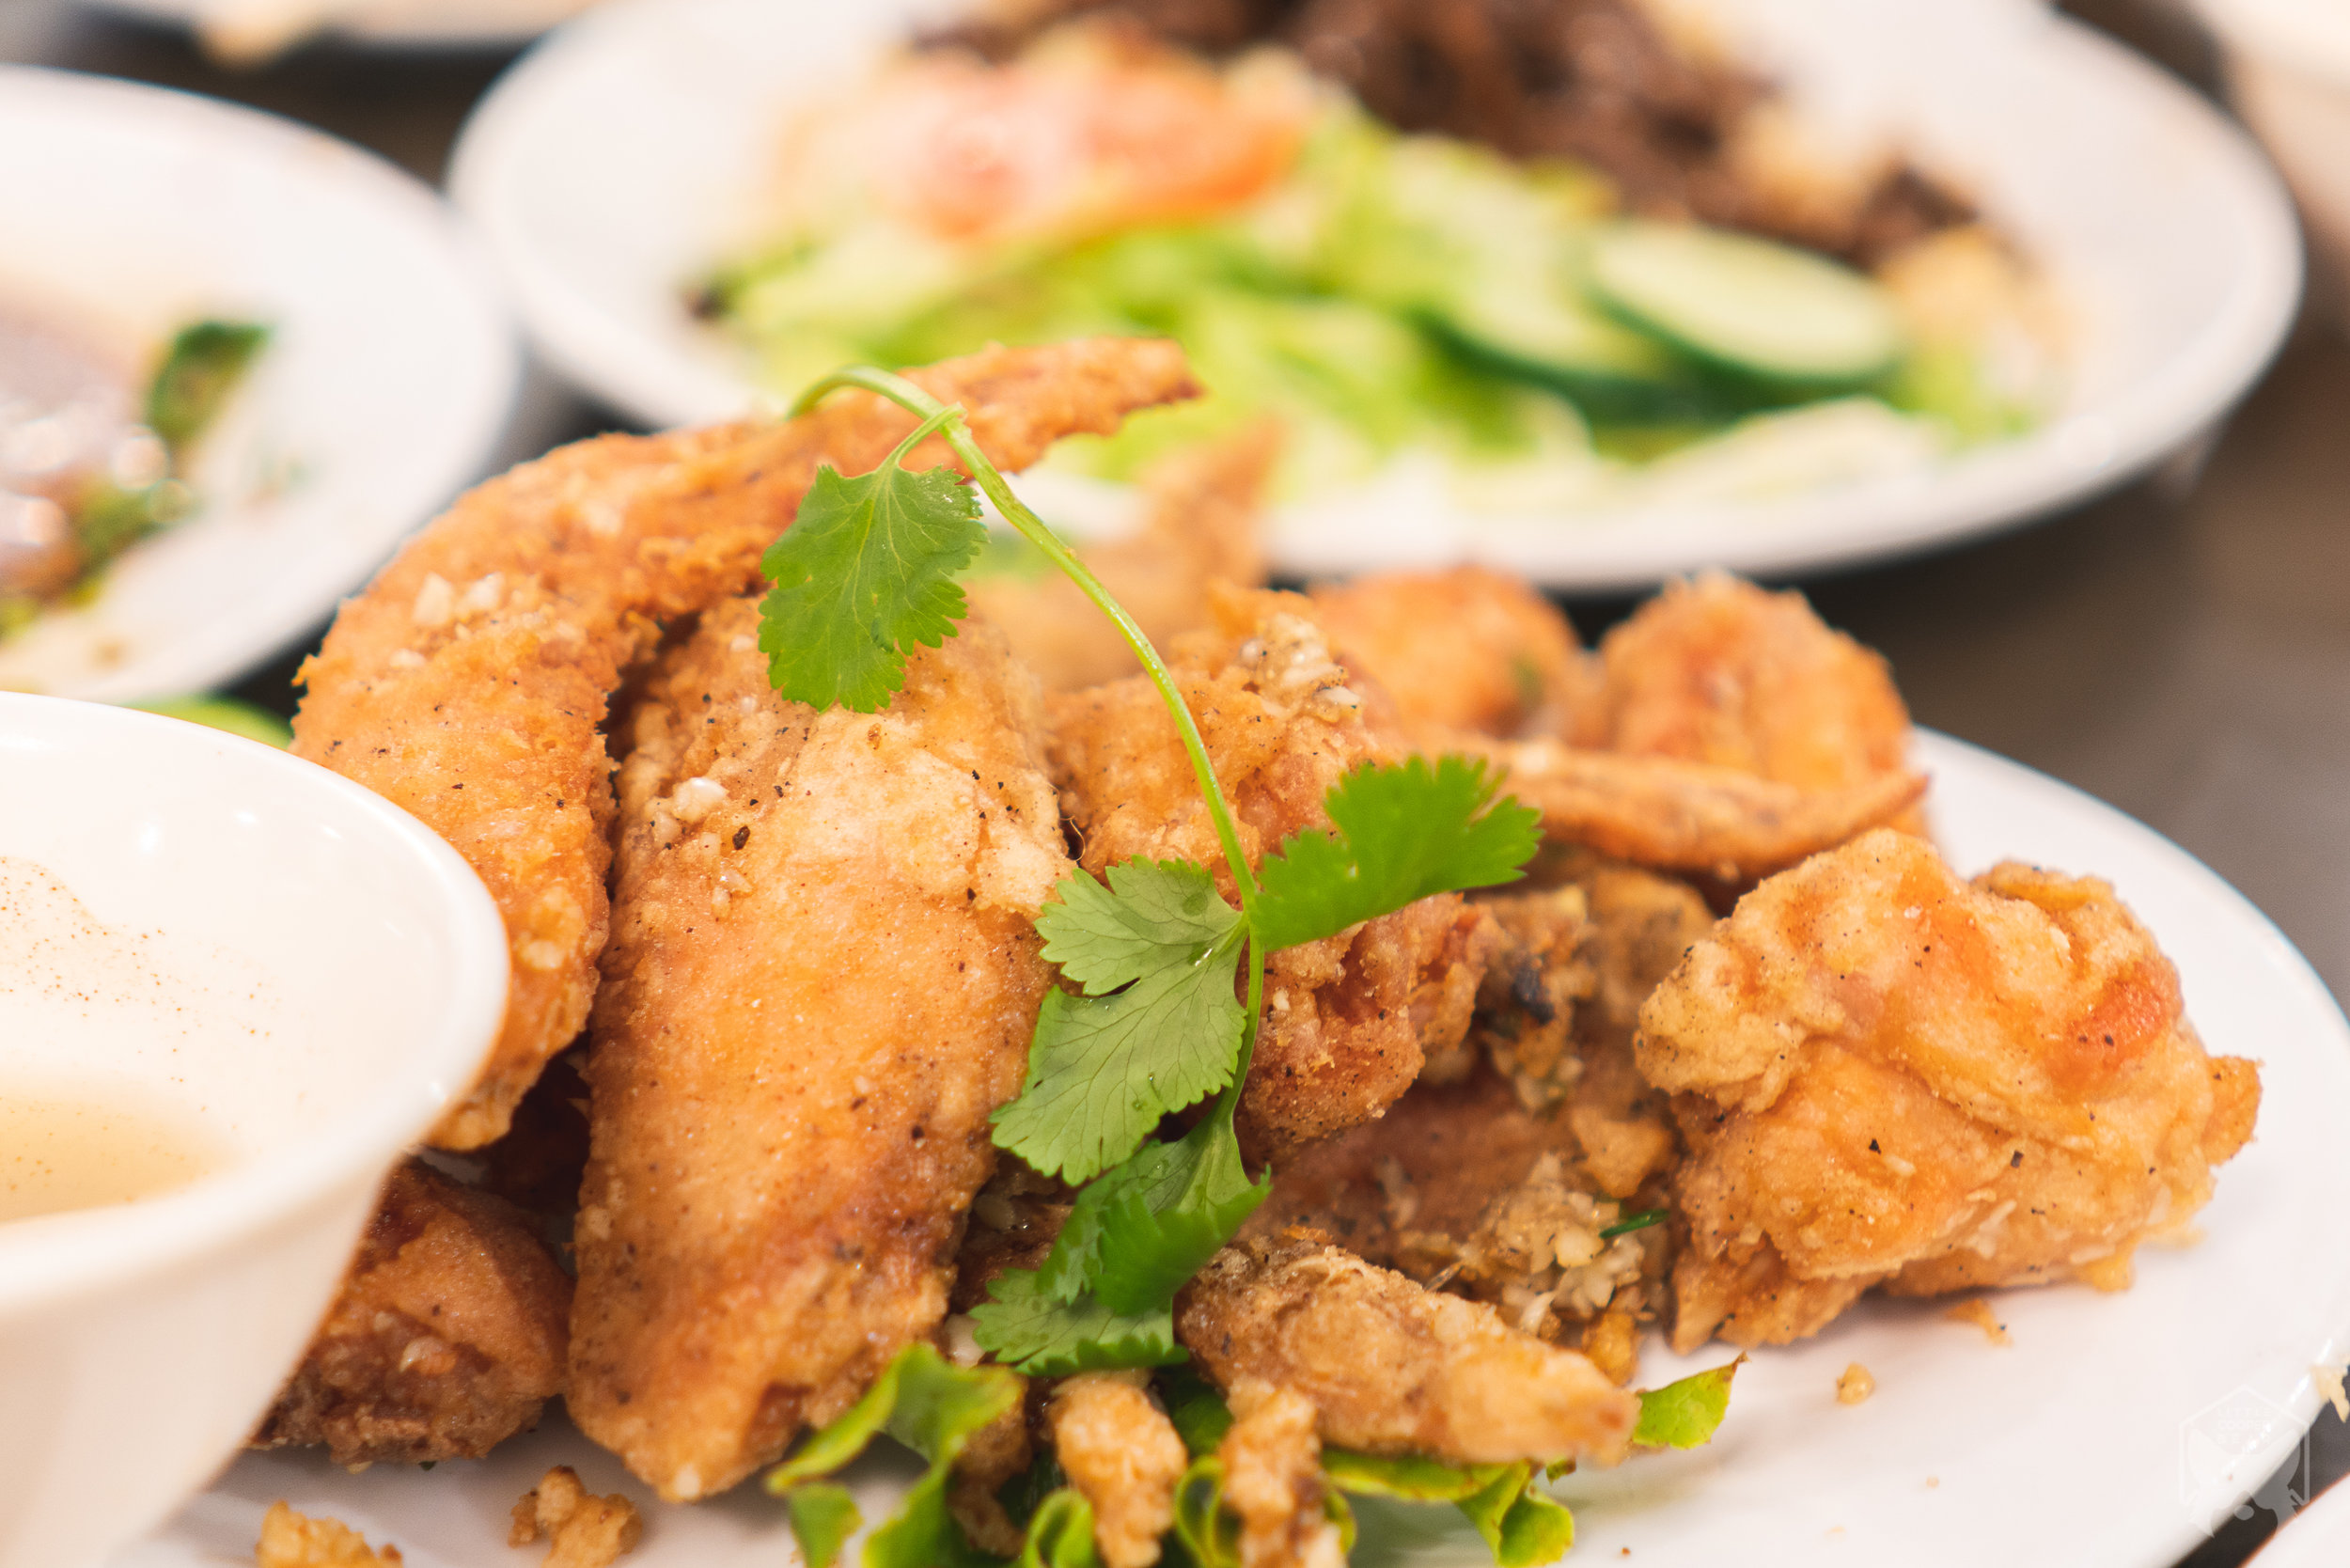 Phnom Penh deep fried chicken wings